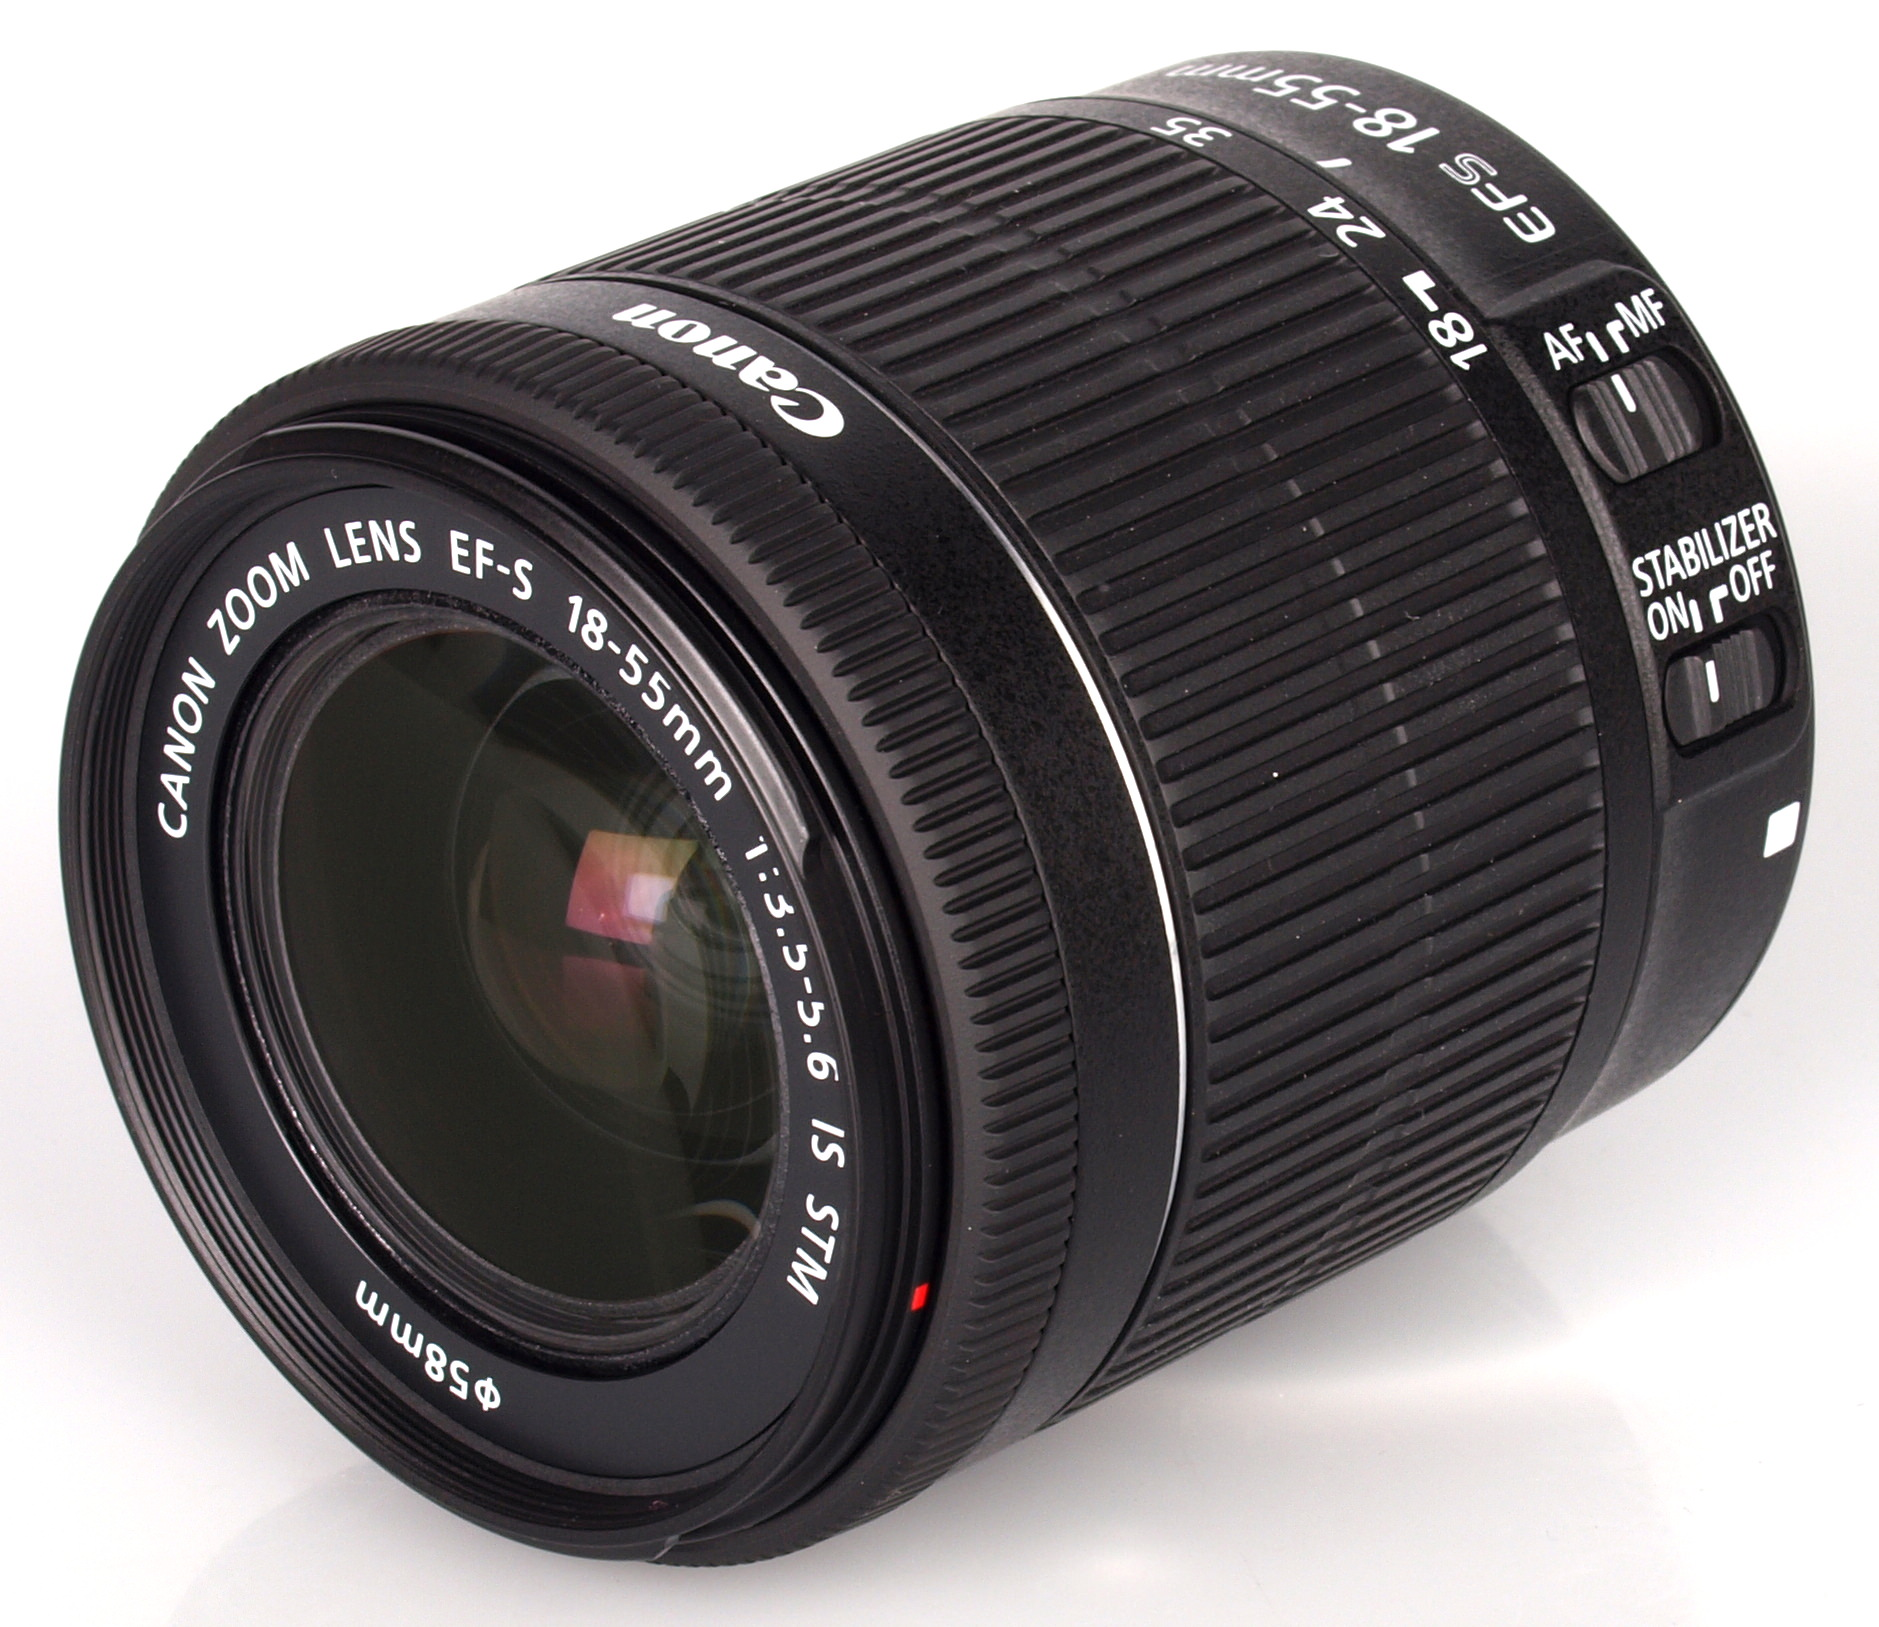 Canon EF-S 18-55mm f/3.5-5.6 Lens Review - the Rebel and Rebel XT ...